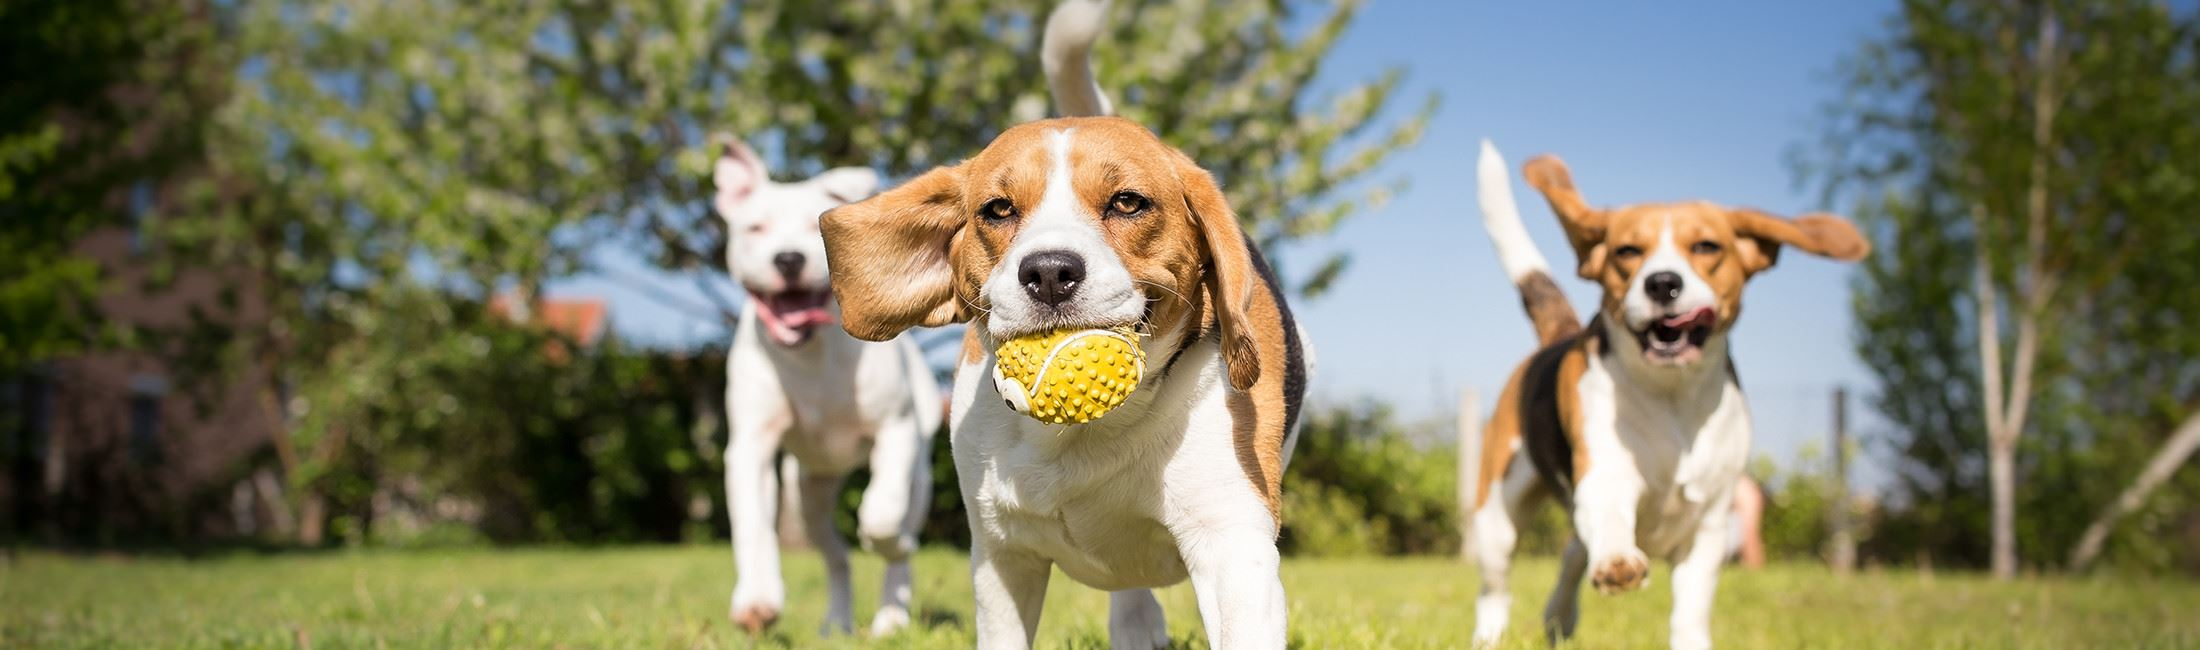 a beagle with a ball in his mouth being chased by two other dogs